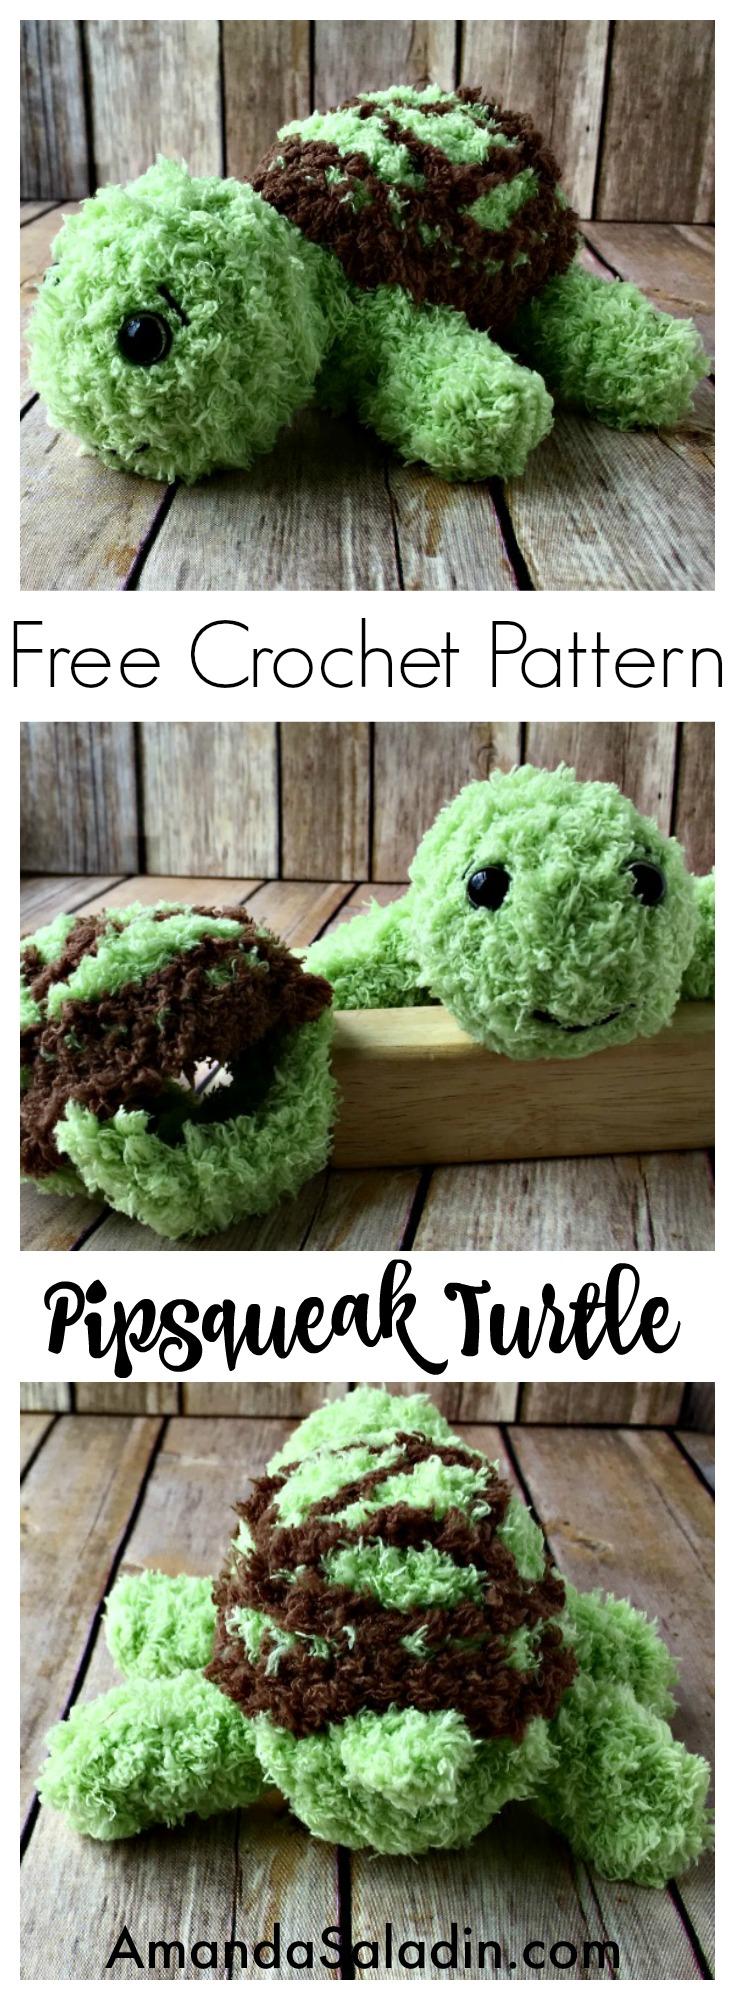 Crochet this adorable turtle - it's so easy! Free pattern!